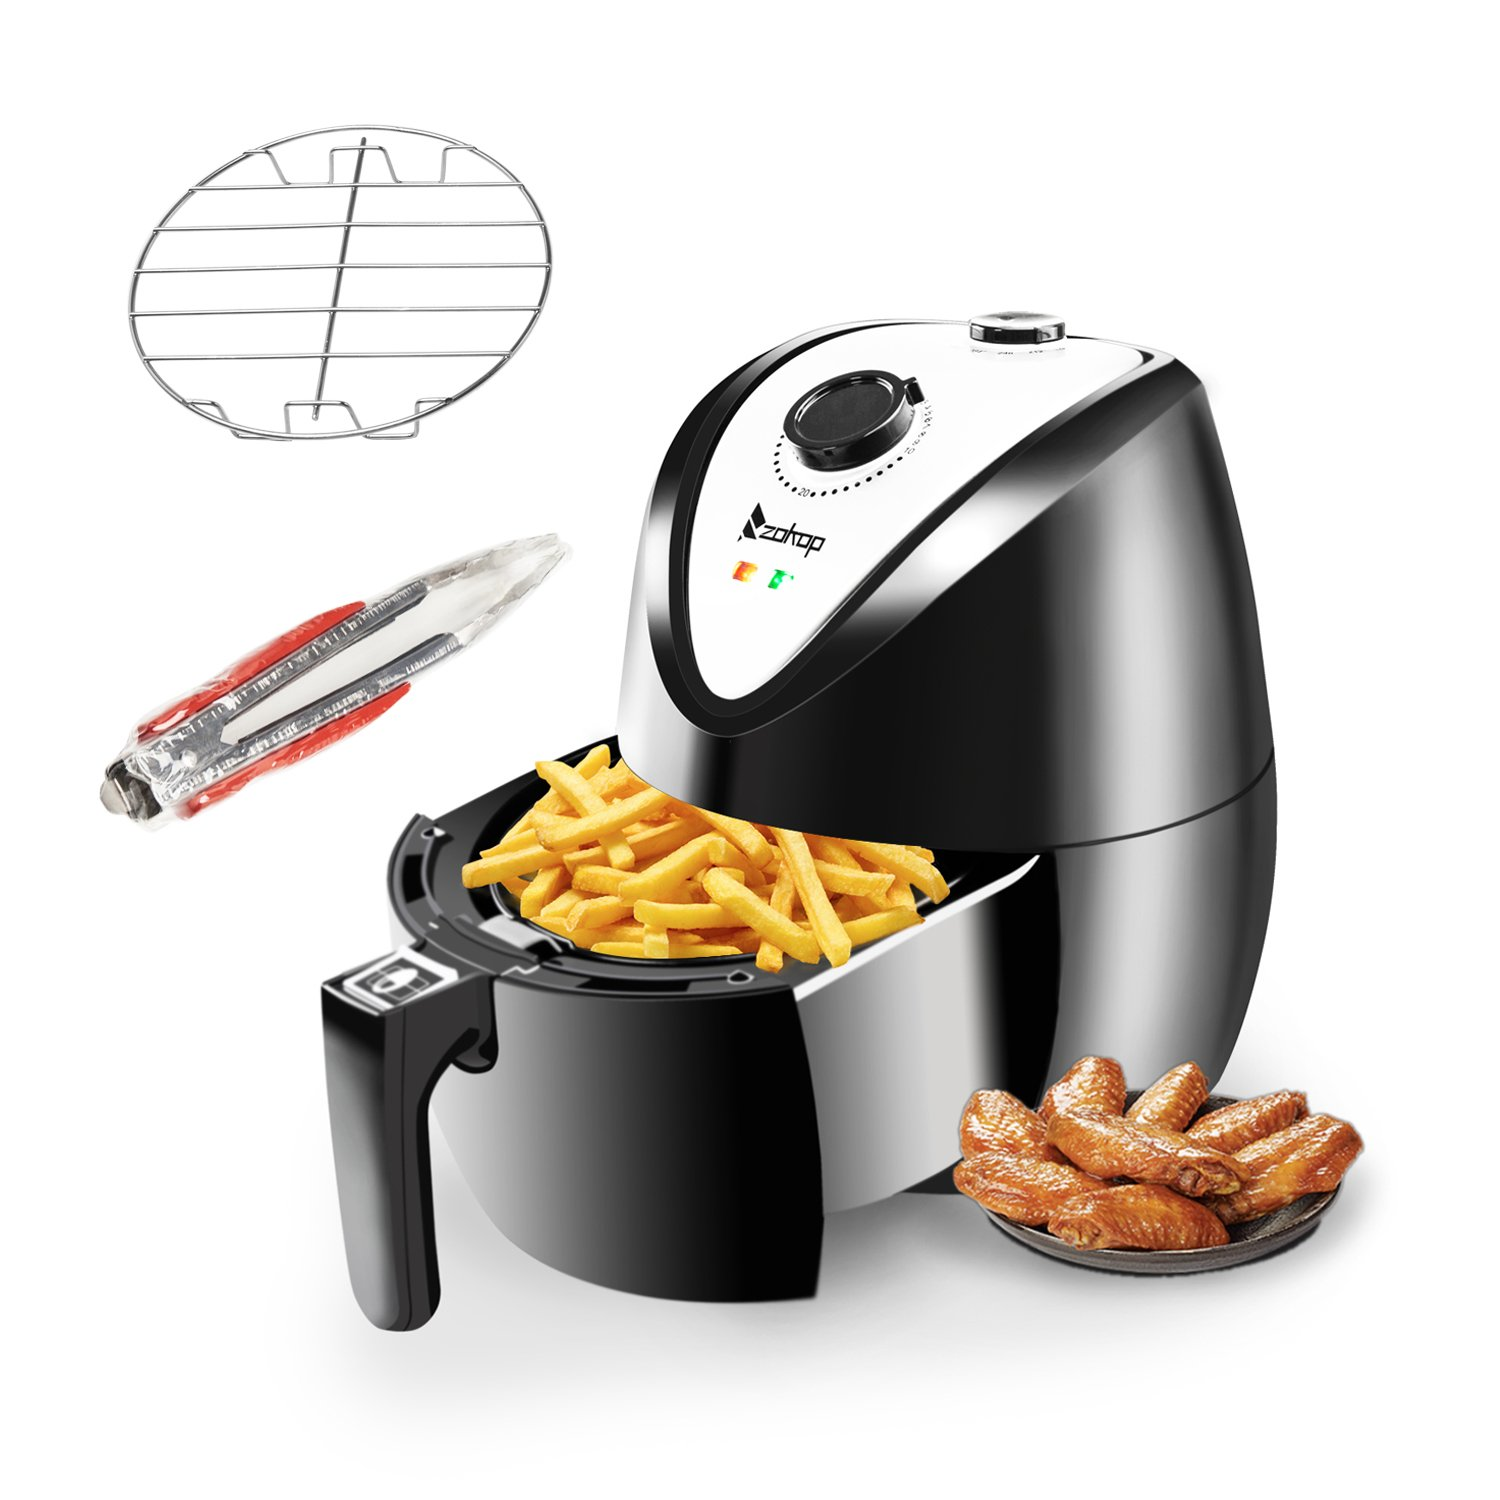 ROVSUN Electric Air Fryer 3.7QT Capacity 1500W Air Frying Technology with Temperature and Time Control, Removable Dishwasher Safe Basket, Includes Metal Holder and Cooking Tongs Accessory, ETL Listed